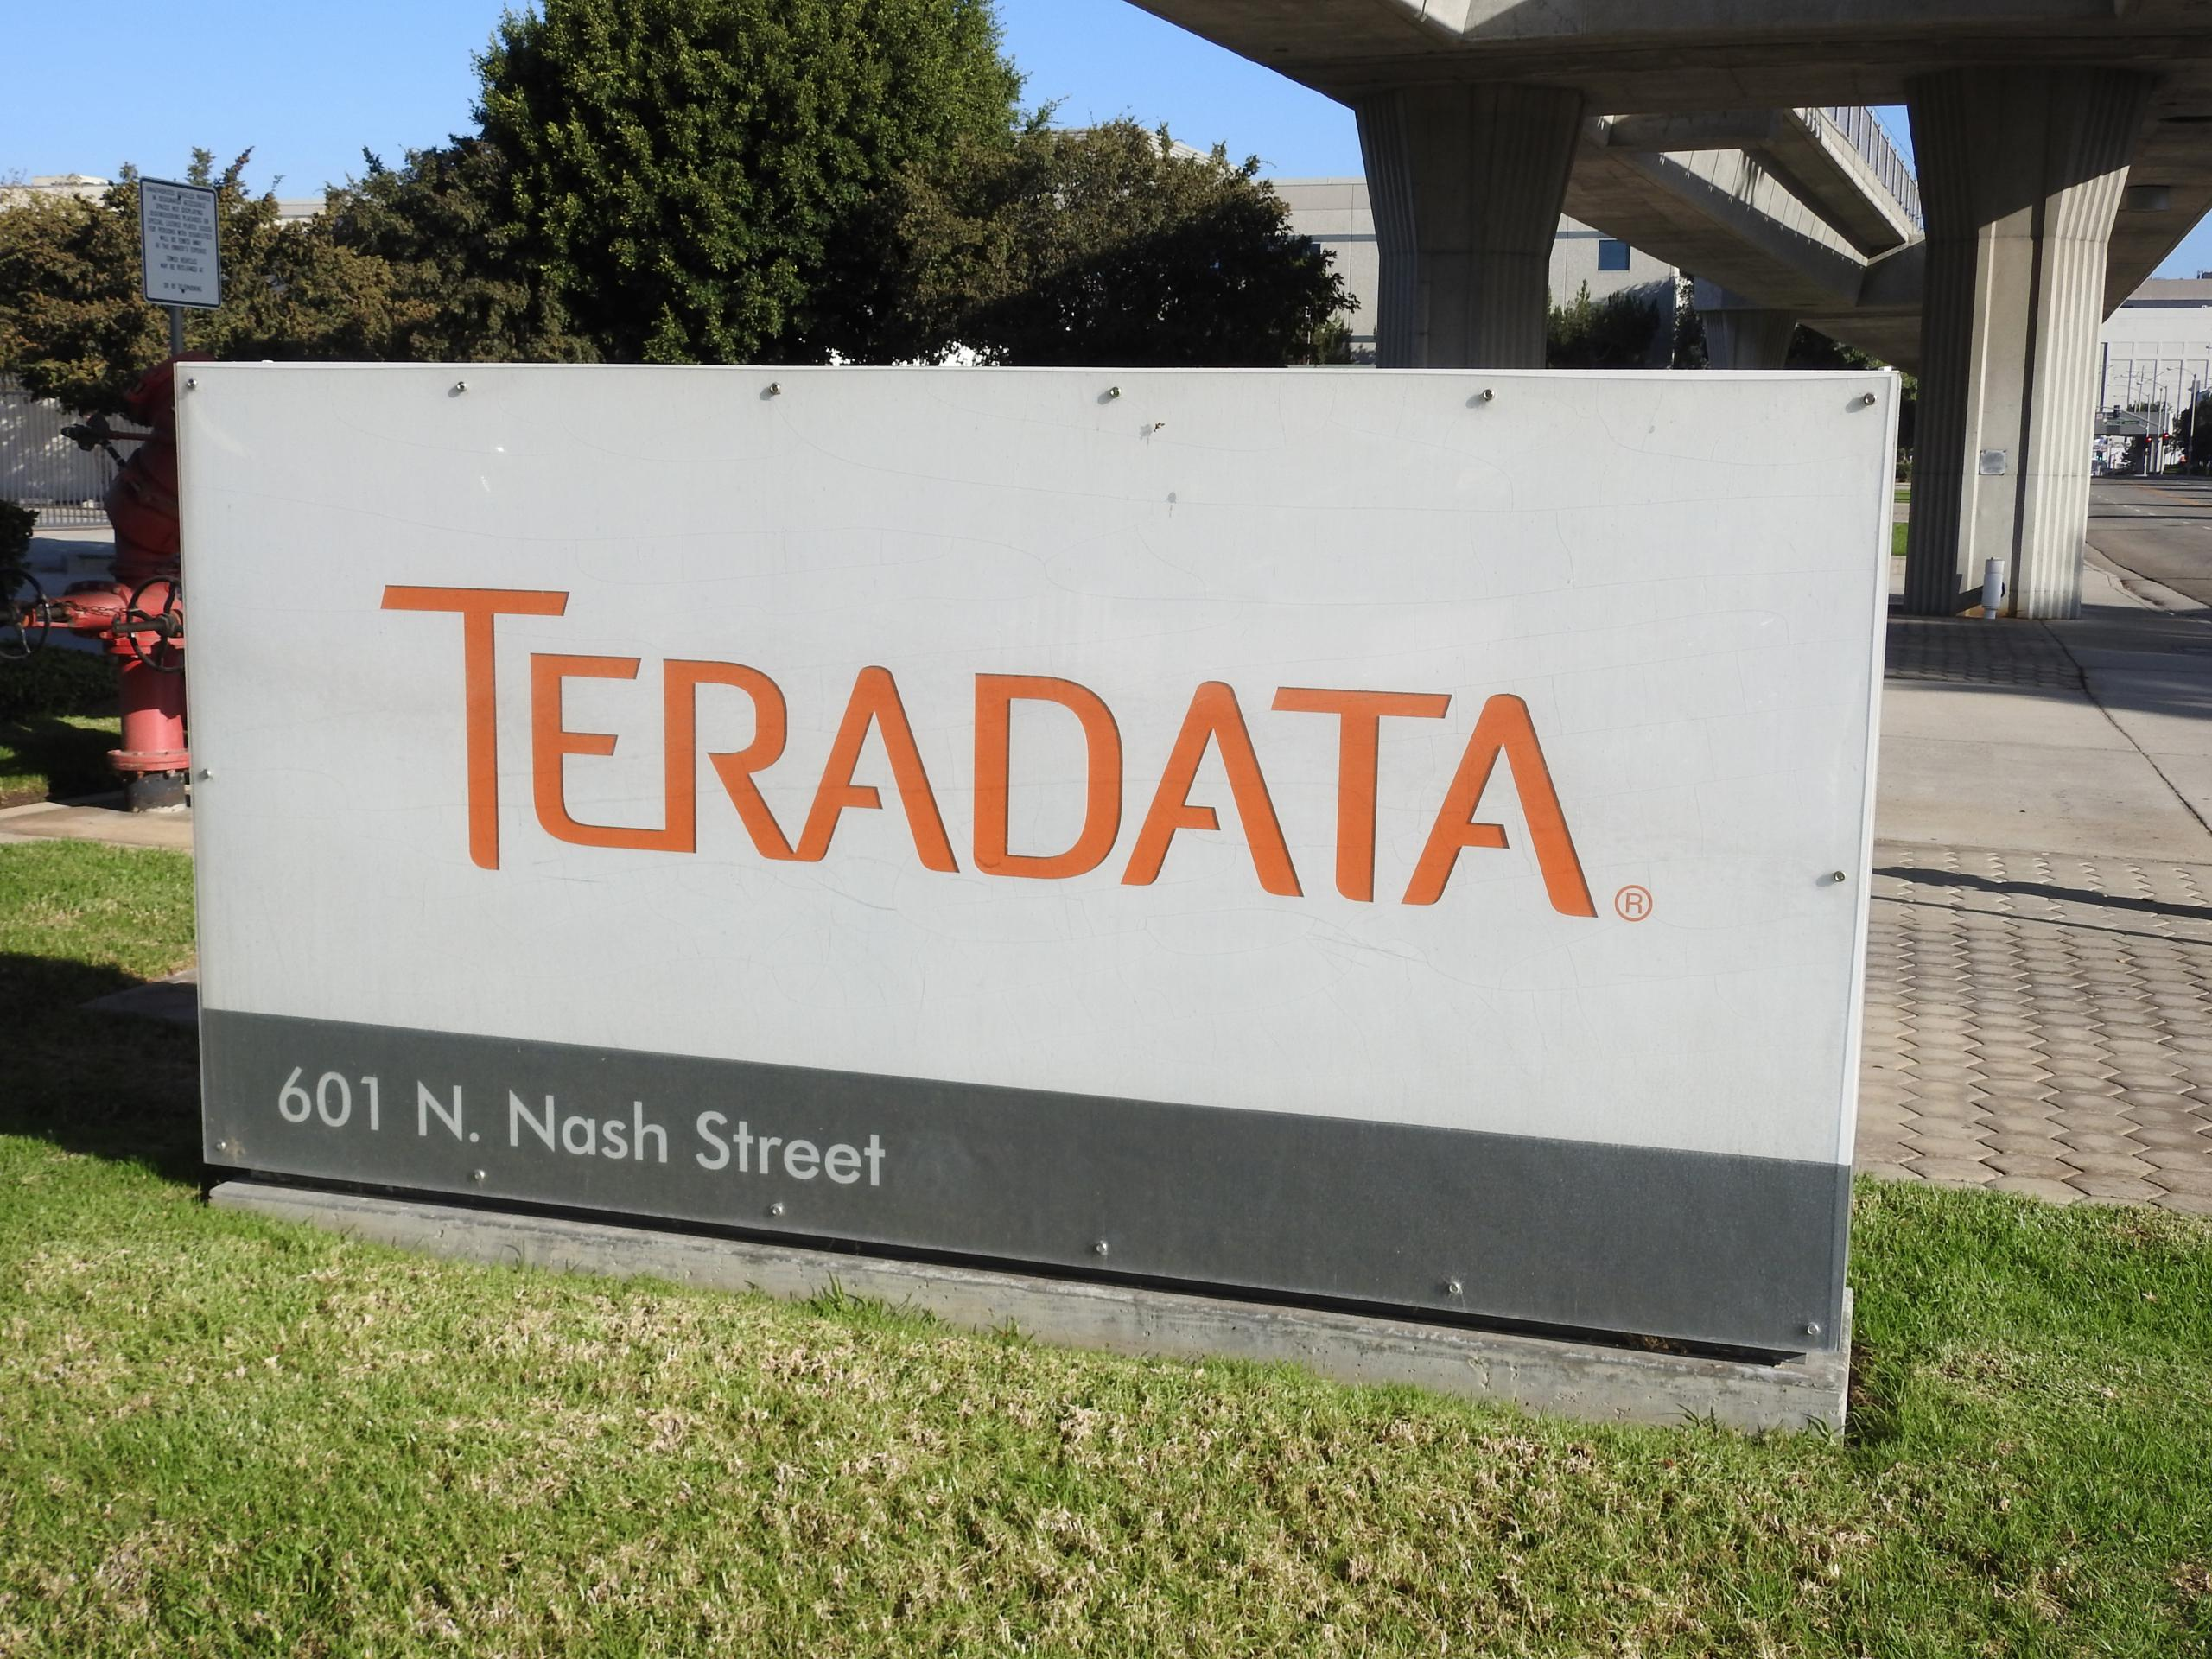 Entrance to a Teradata office in El Segundo, California.